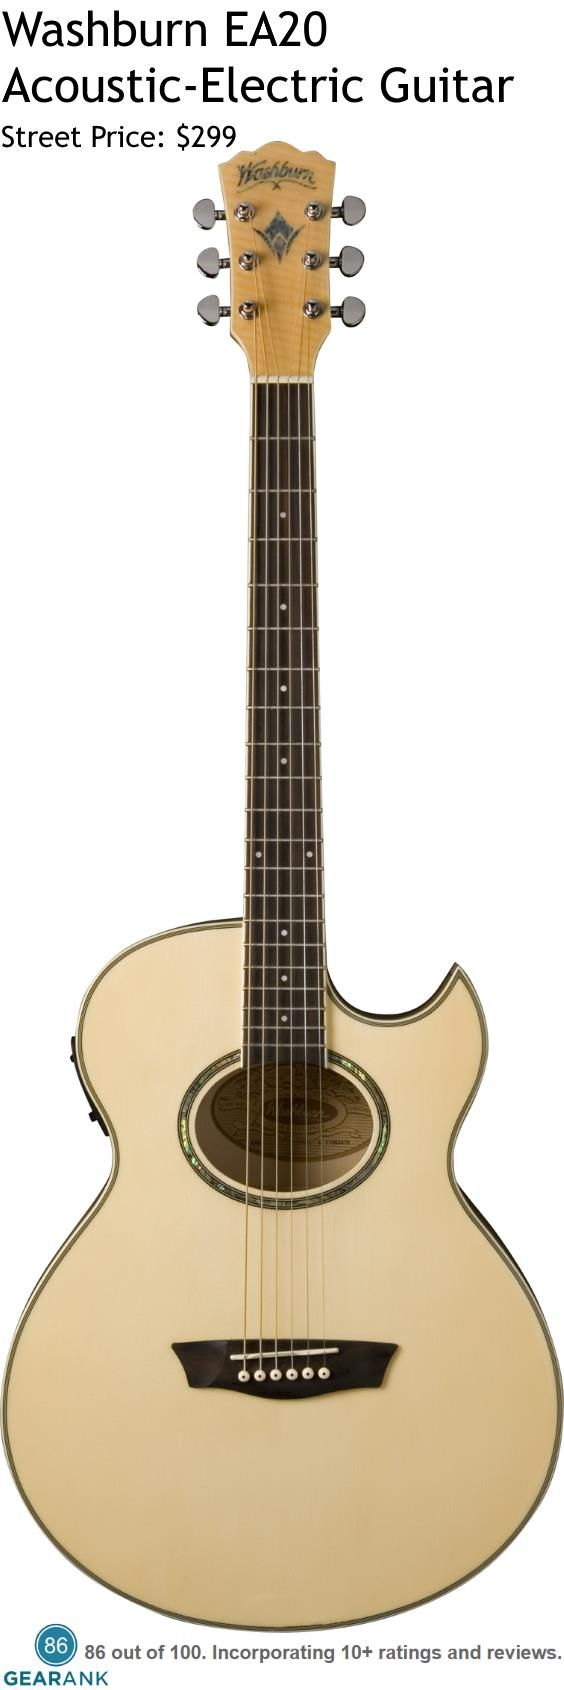 "Washburn EA20 Acoustic-Electric Guitar. Features: Flame Maple Veneer - 1/4"" scalloped sitka spruce bracing - Double action truss rod - Bone Nut and Saddle. For a detailed guide to acoustic guitars see https://www.gearank.com/guides/acoustic-guitars"